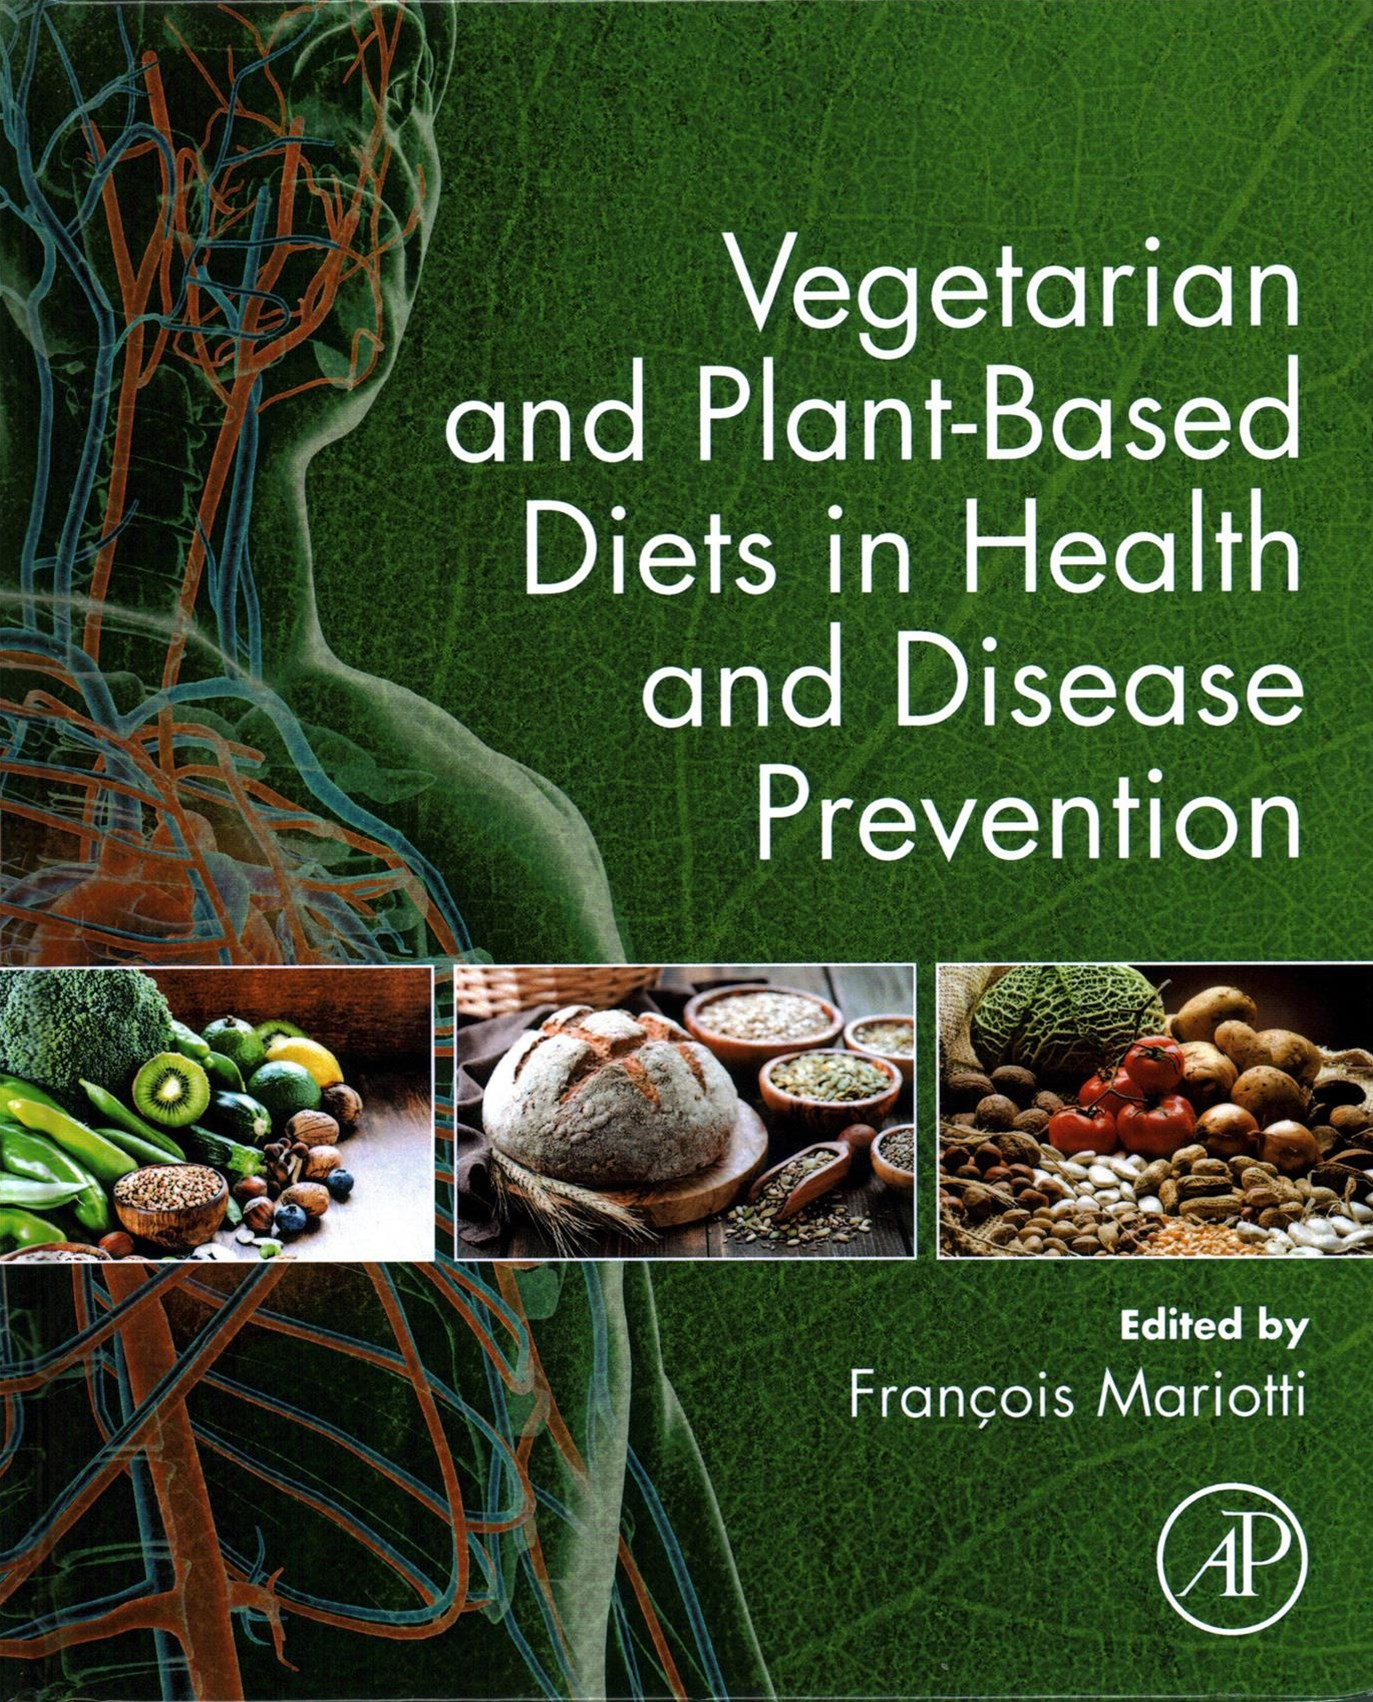 Vegetarian and Plant Based Diets in Health and Disease Prevention